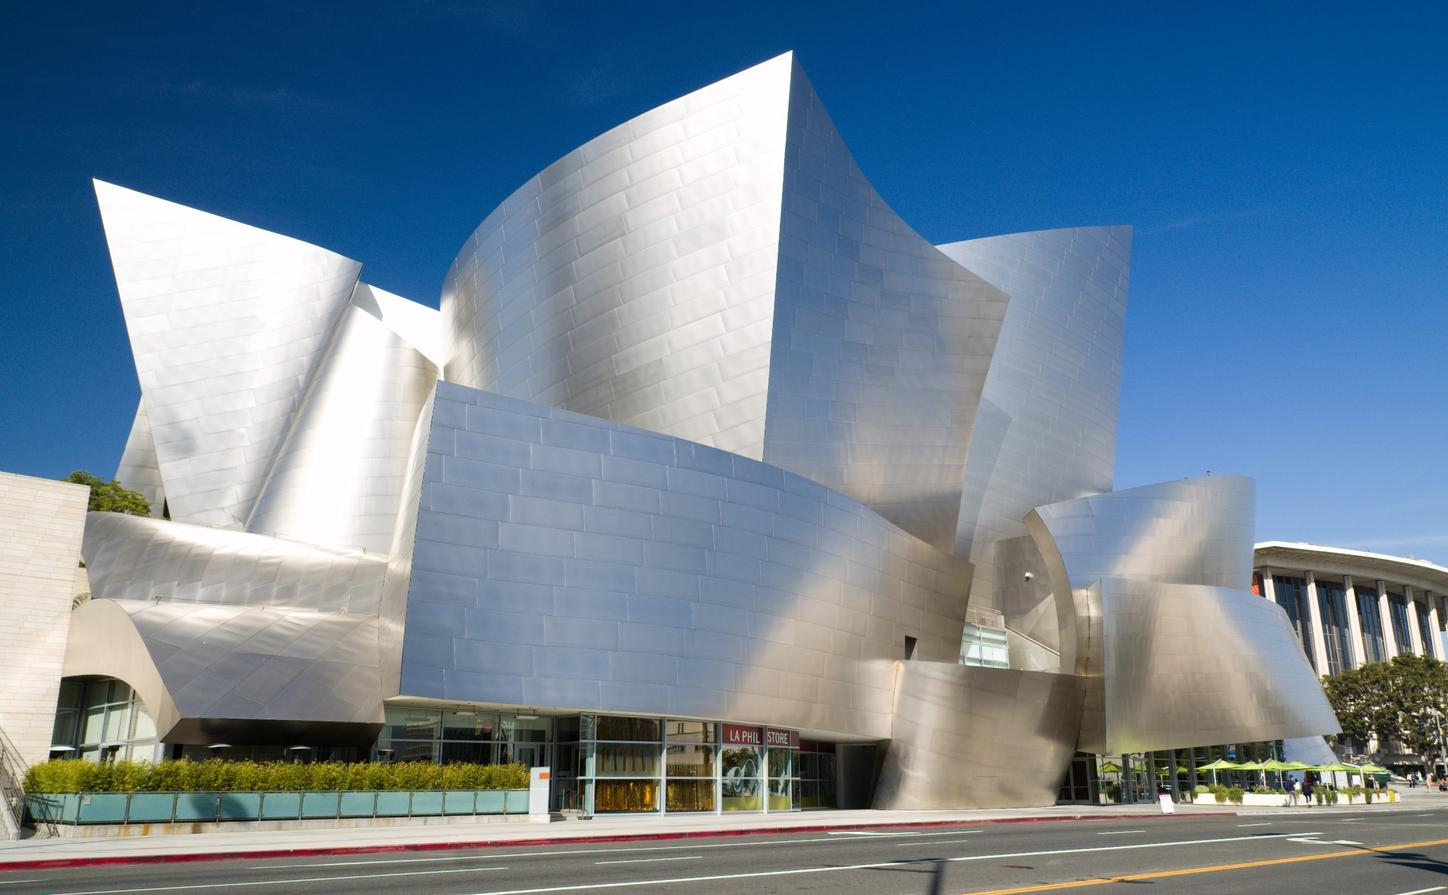 The Walt Disney Music Hall designed by Frank Gehry is known for its stainless steel exterior.